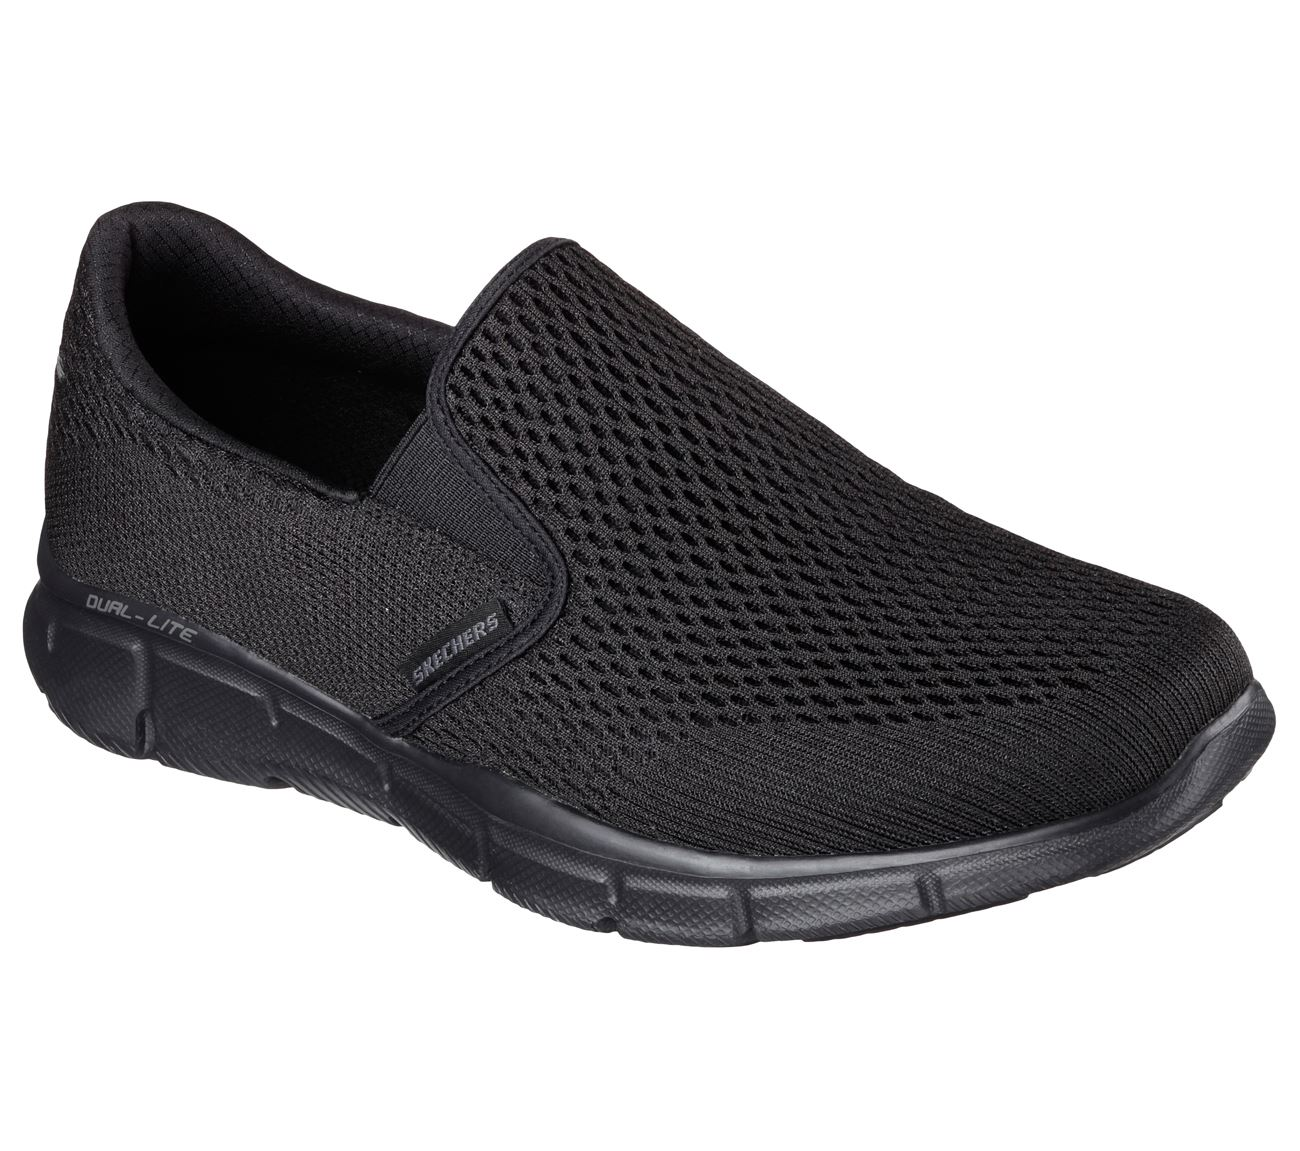 SKECHERS Men/'s Equalizer-Double Play Trainers in Charcoal//Orange,Size UK5.5-UK13